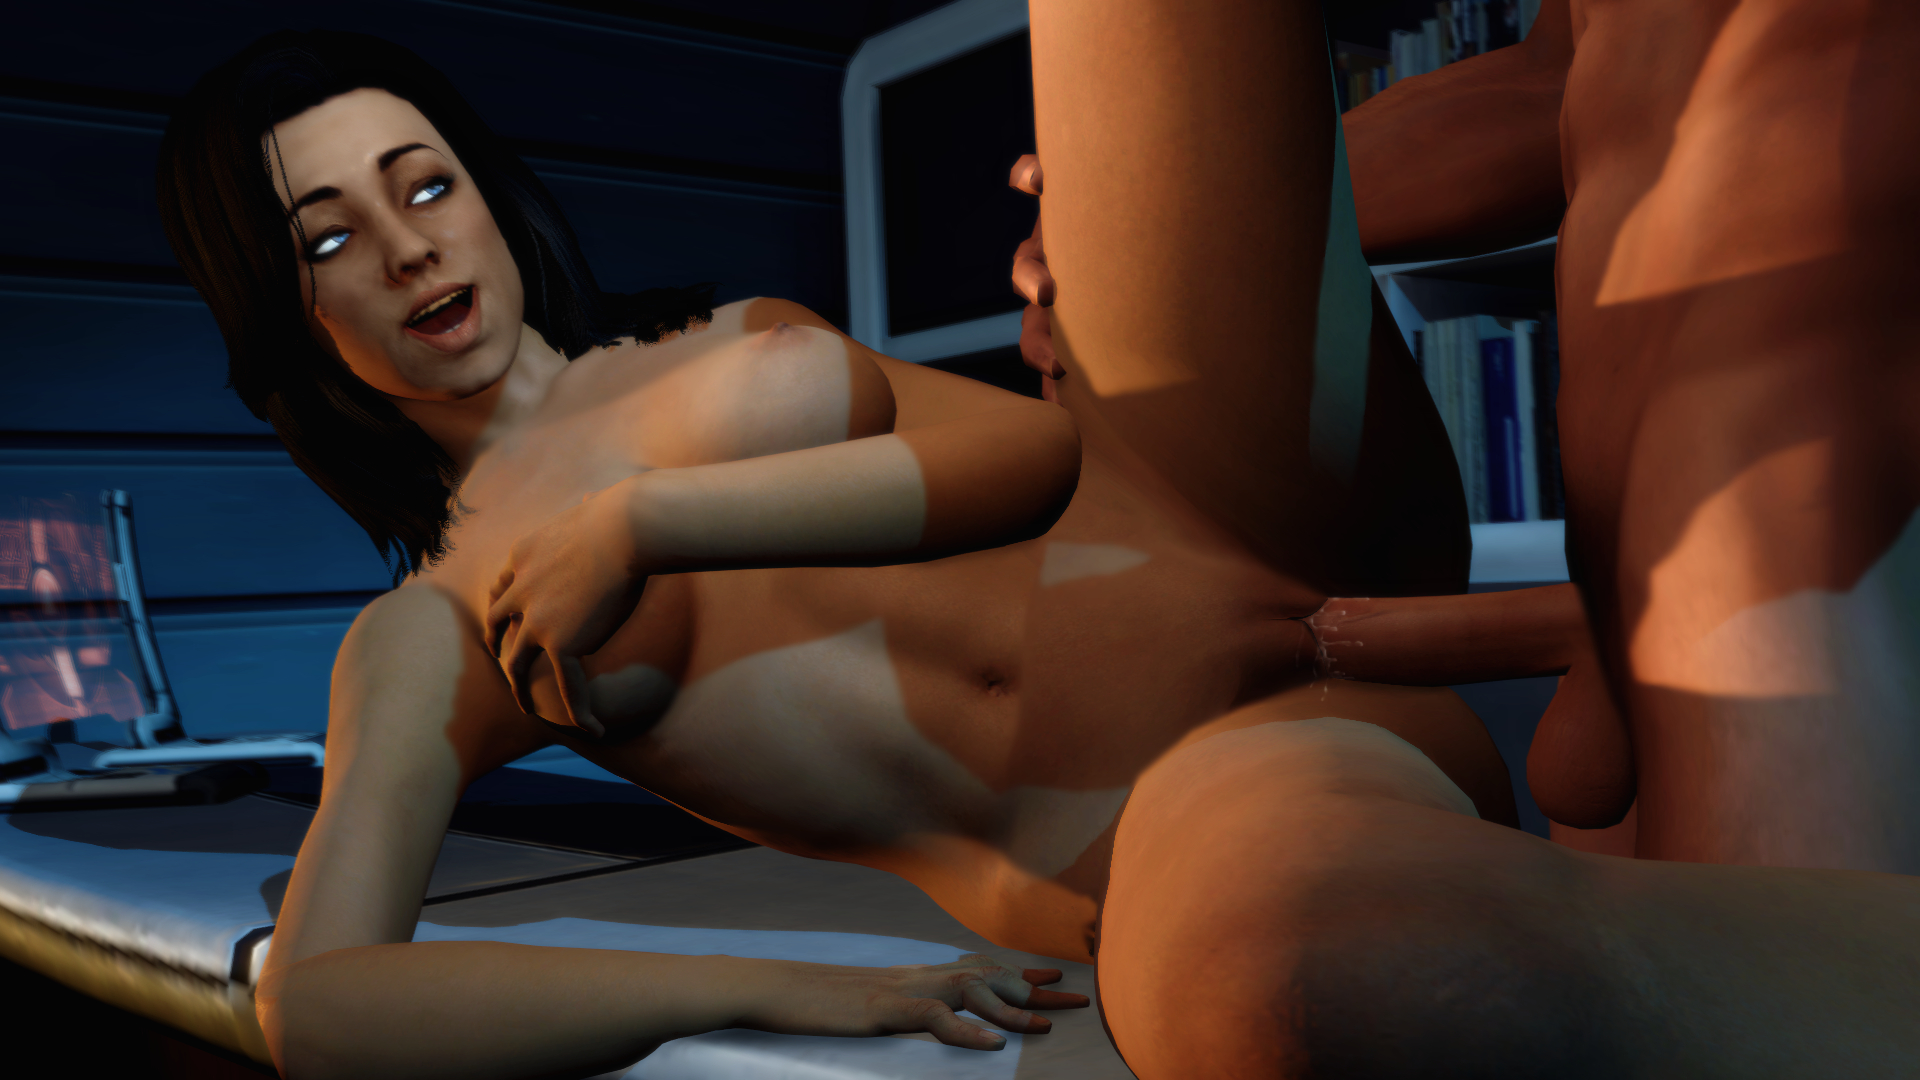 Mass Effect Porn Mass Miranda Effect Gmod Lawson Lxl